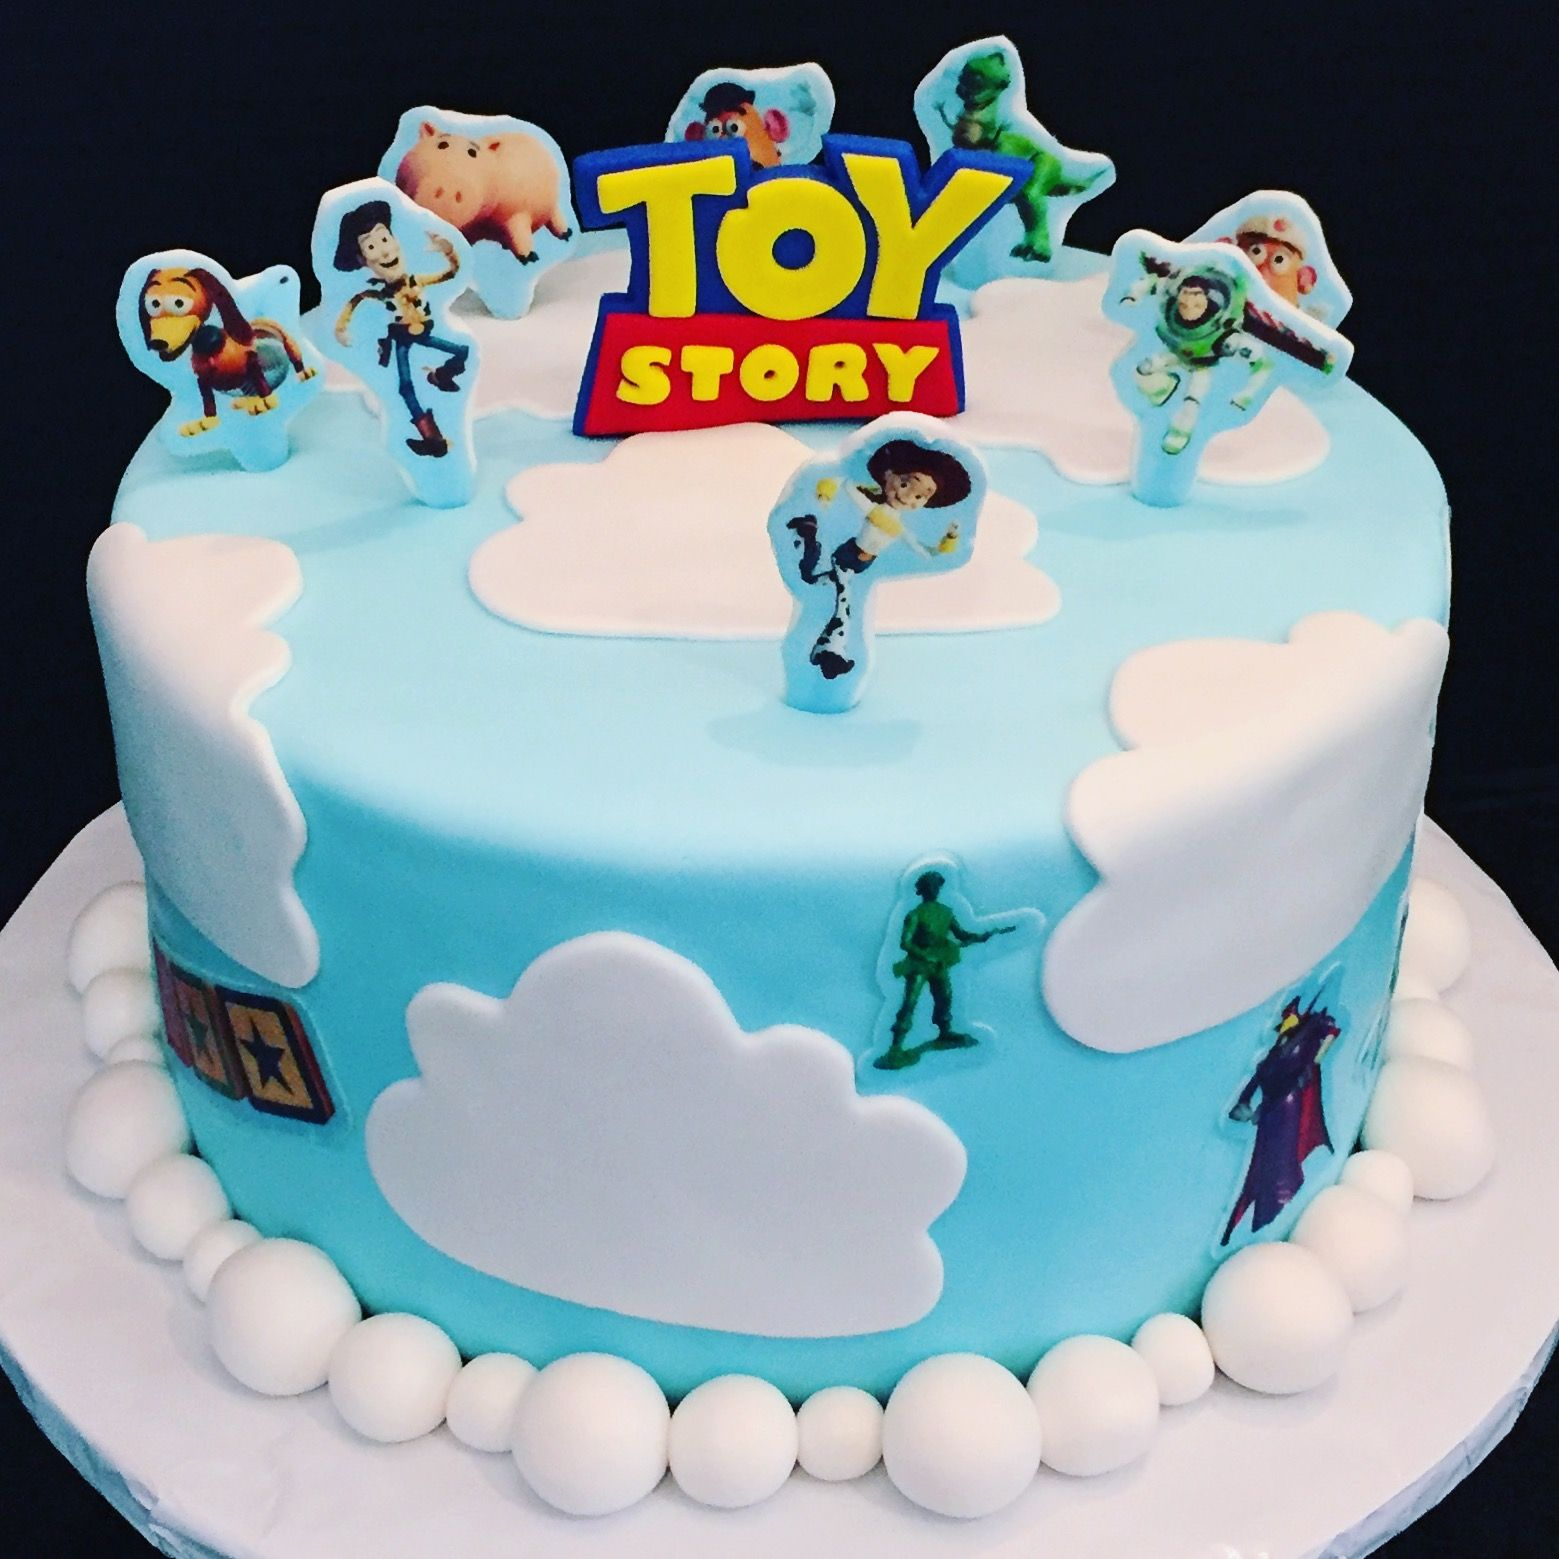 Toy Story Edible Icing Decor for Cakes